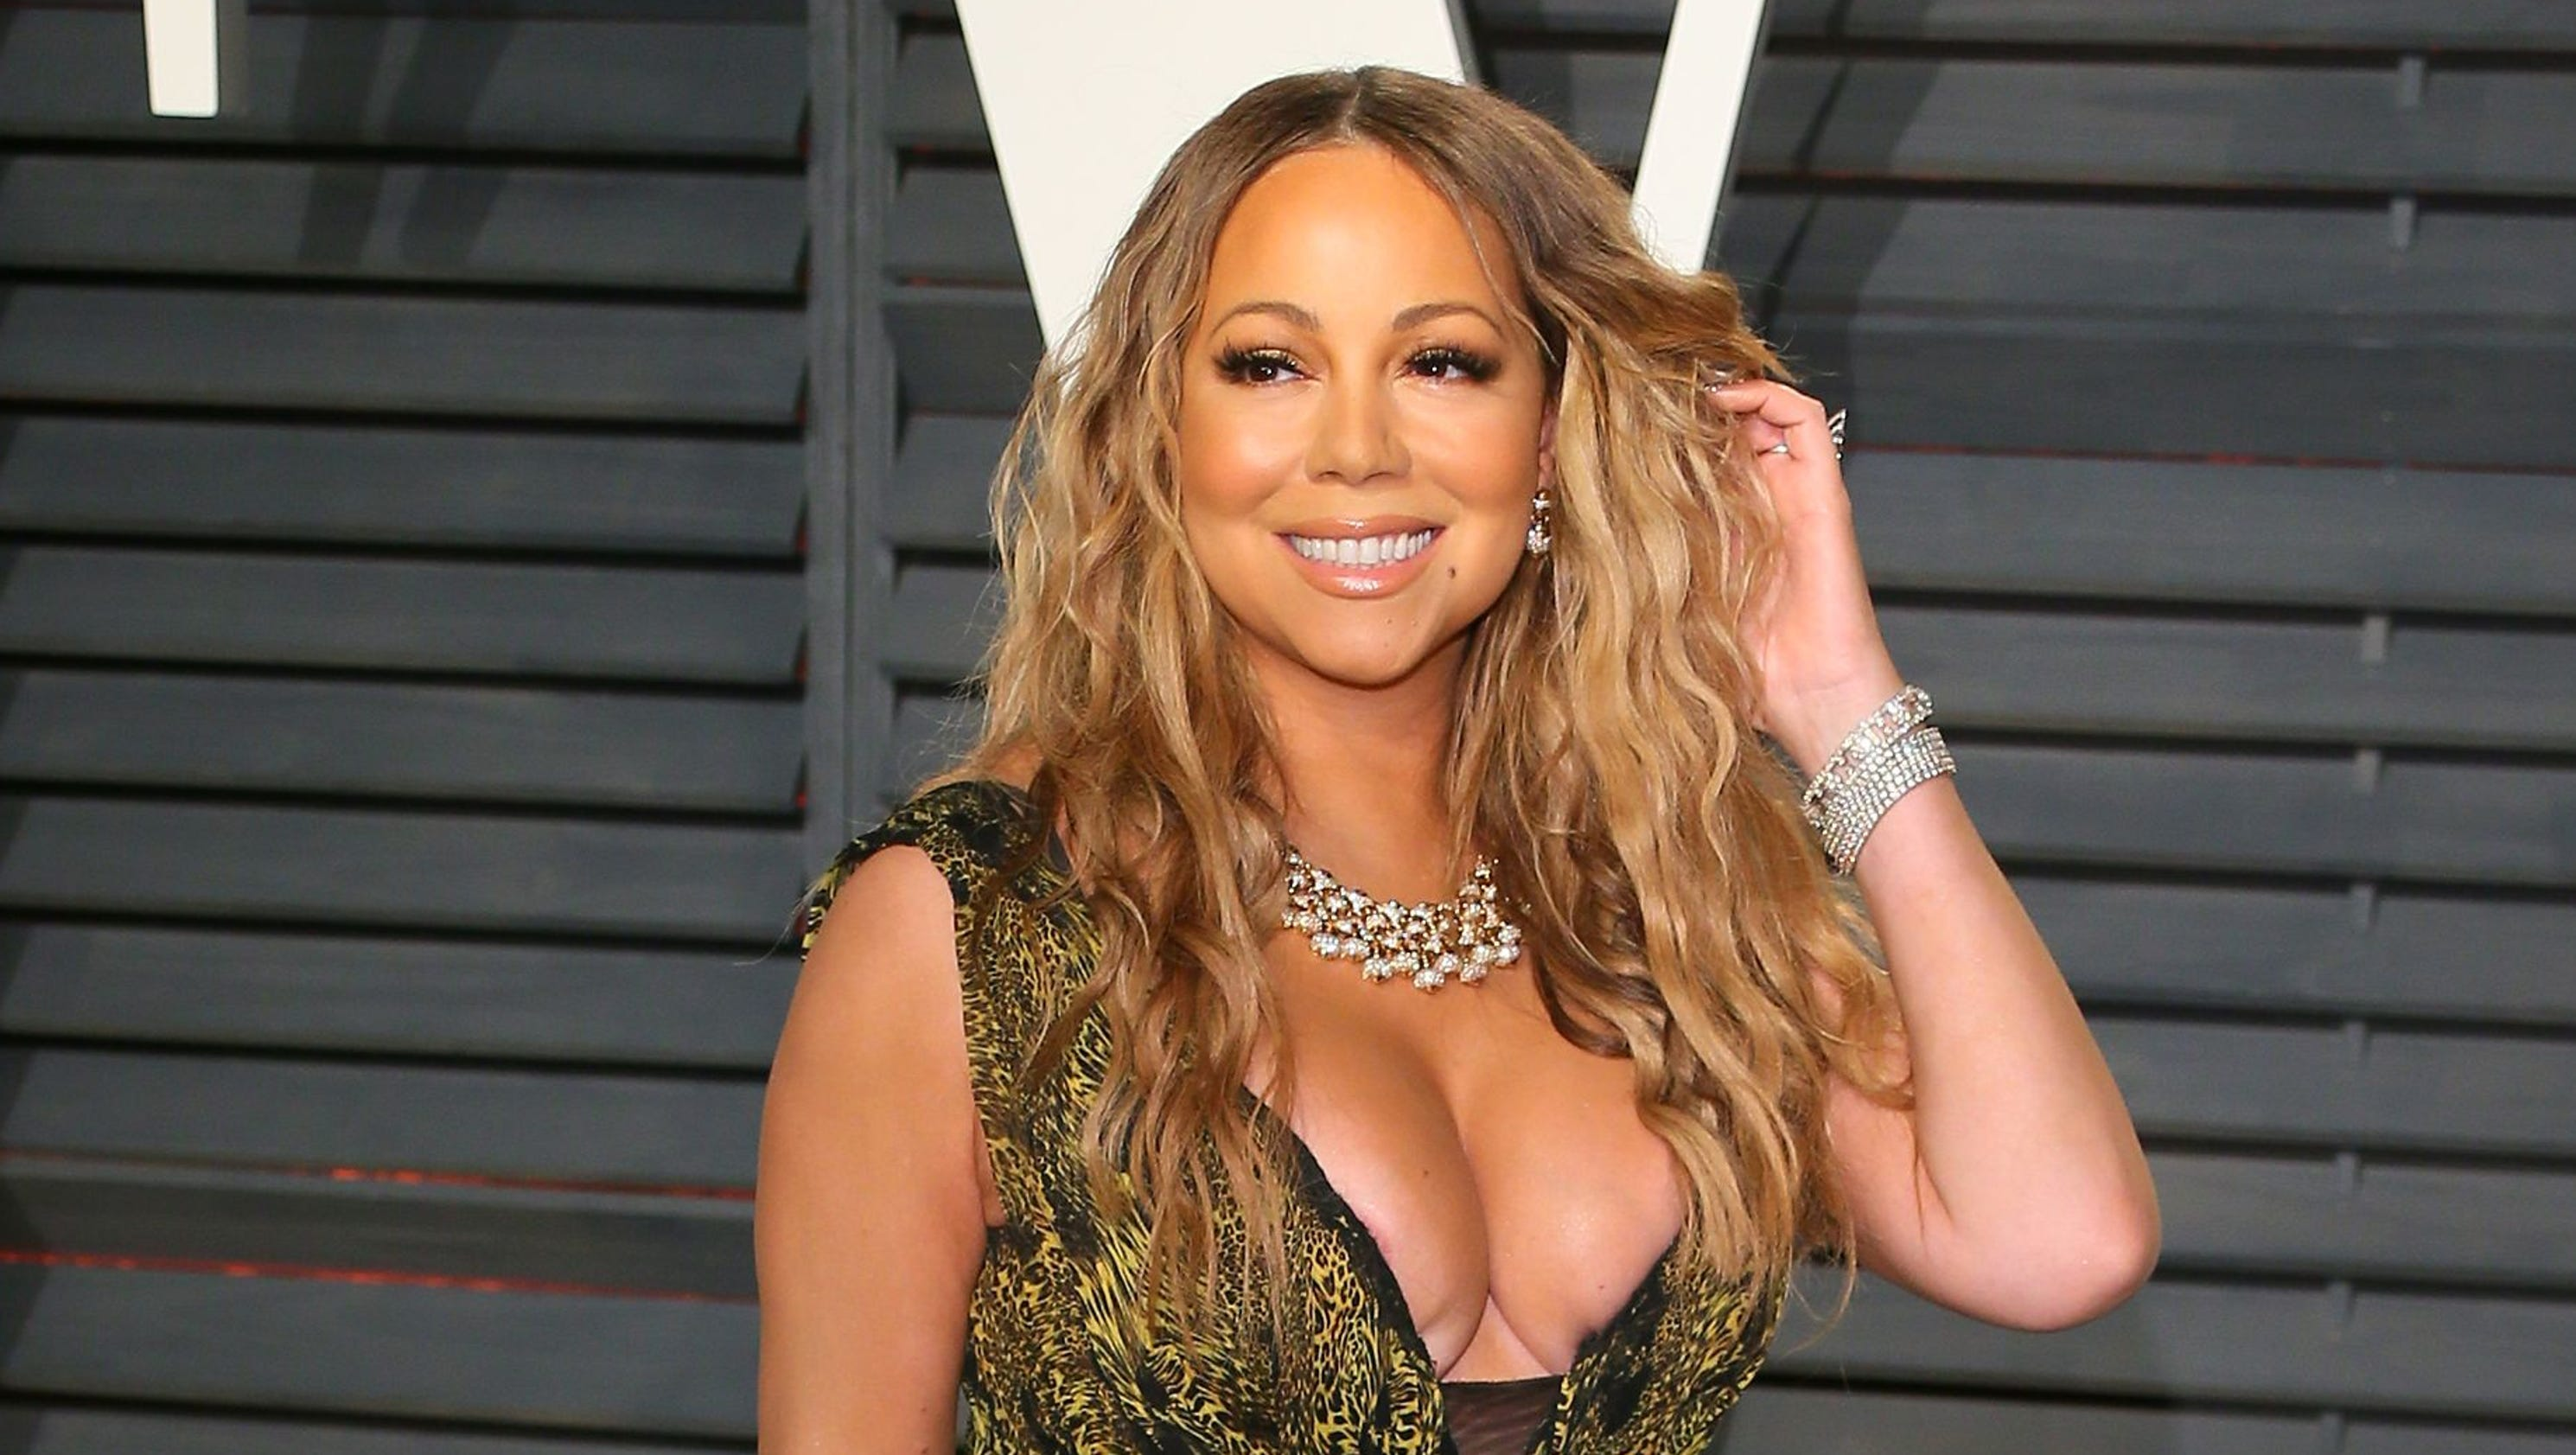 the life and career of mariah carey Mariah carey's 2002 appearance on mtv cribs is now considered a classicdressed in a tank top and sweats, mariah took viewers on a tour of her new york city penthouse where she showed off her .